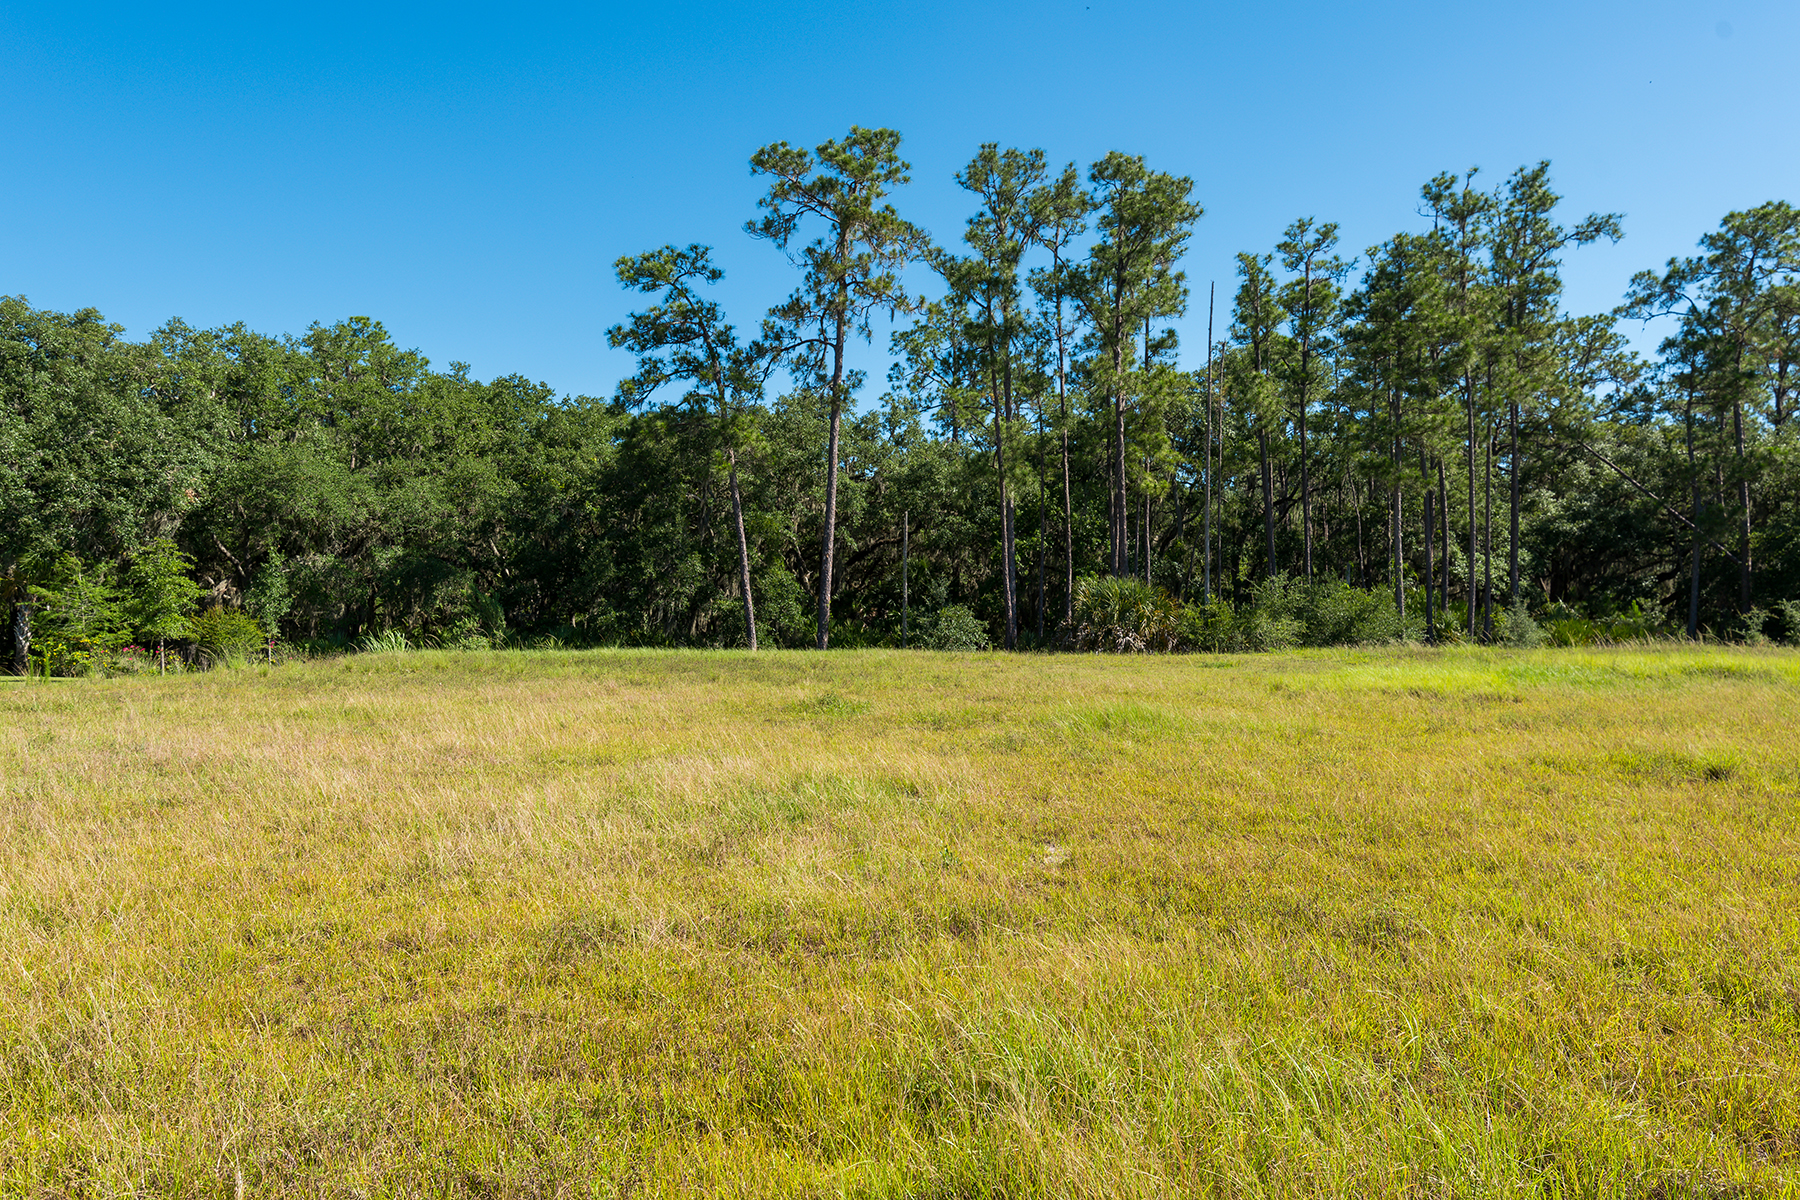 Land for Sale at THE CONCESSION 19439 Beacon Park Pl Pl, Bradenton, Florida 34202 United States